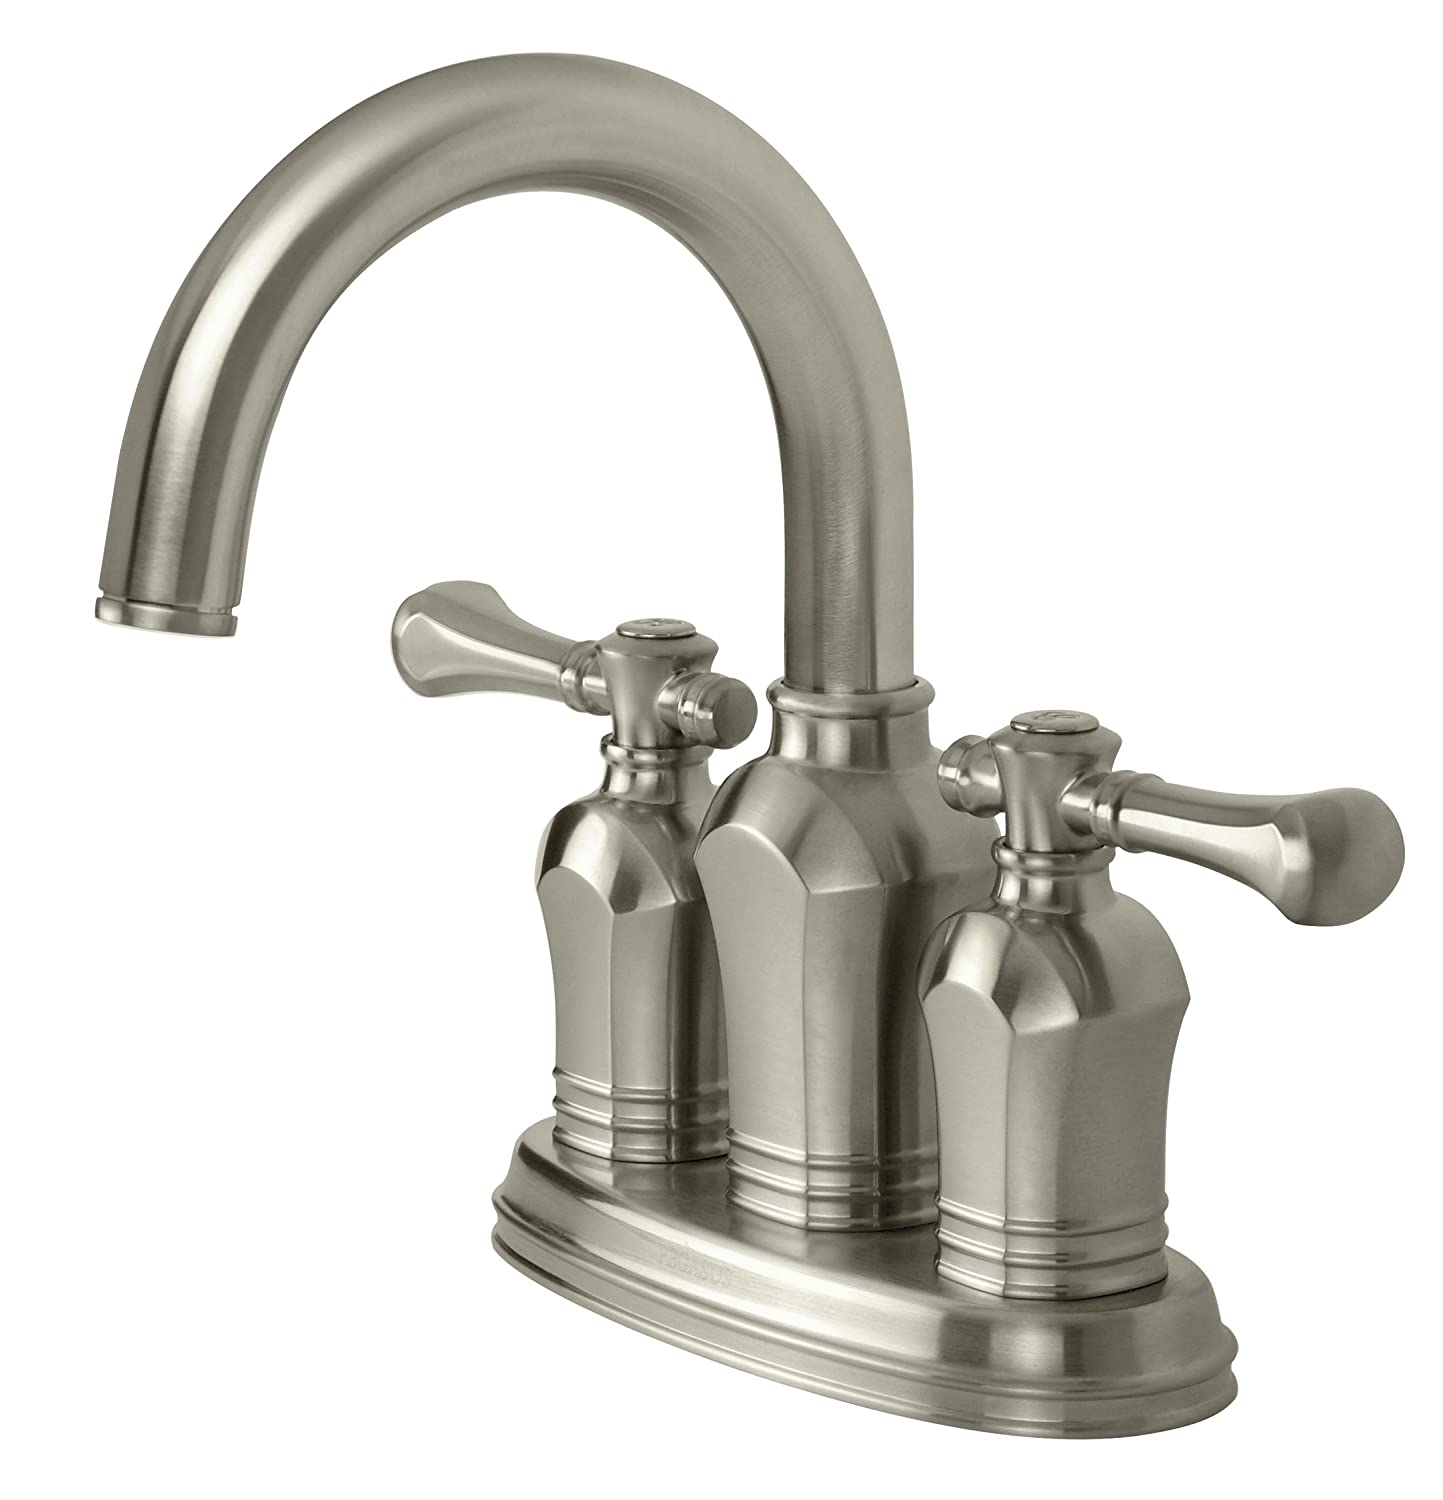 pegasus faucet amazon kitchen premier touch dp on charlestown sink com faucets handle two